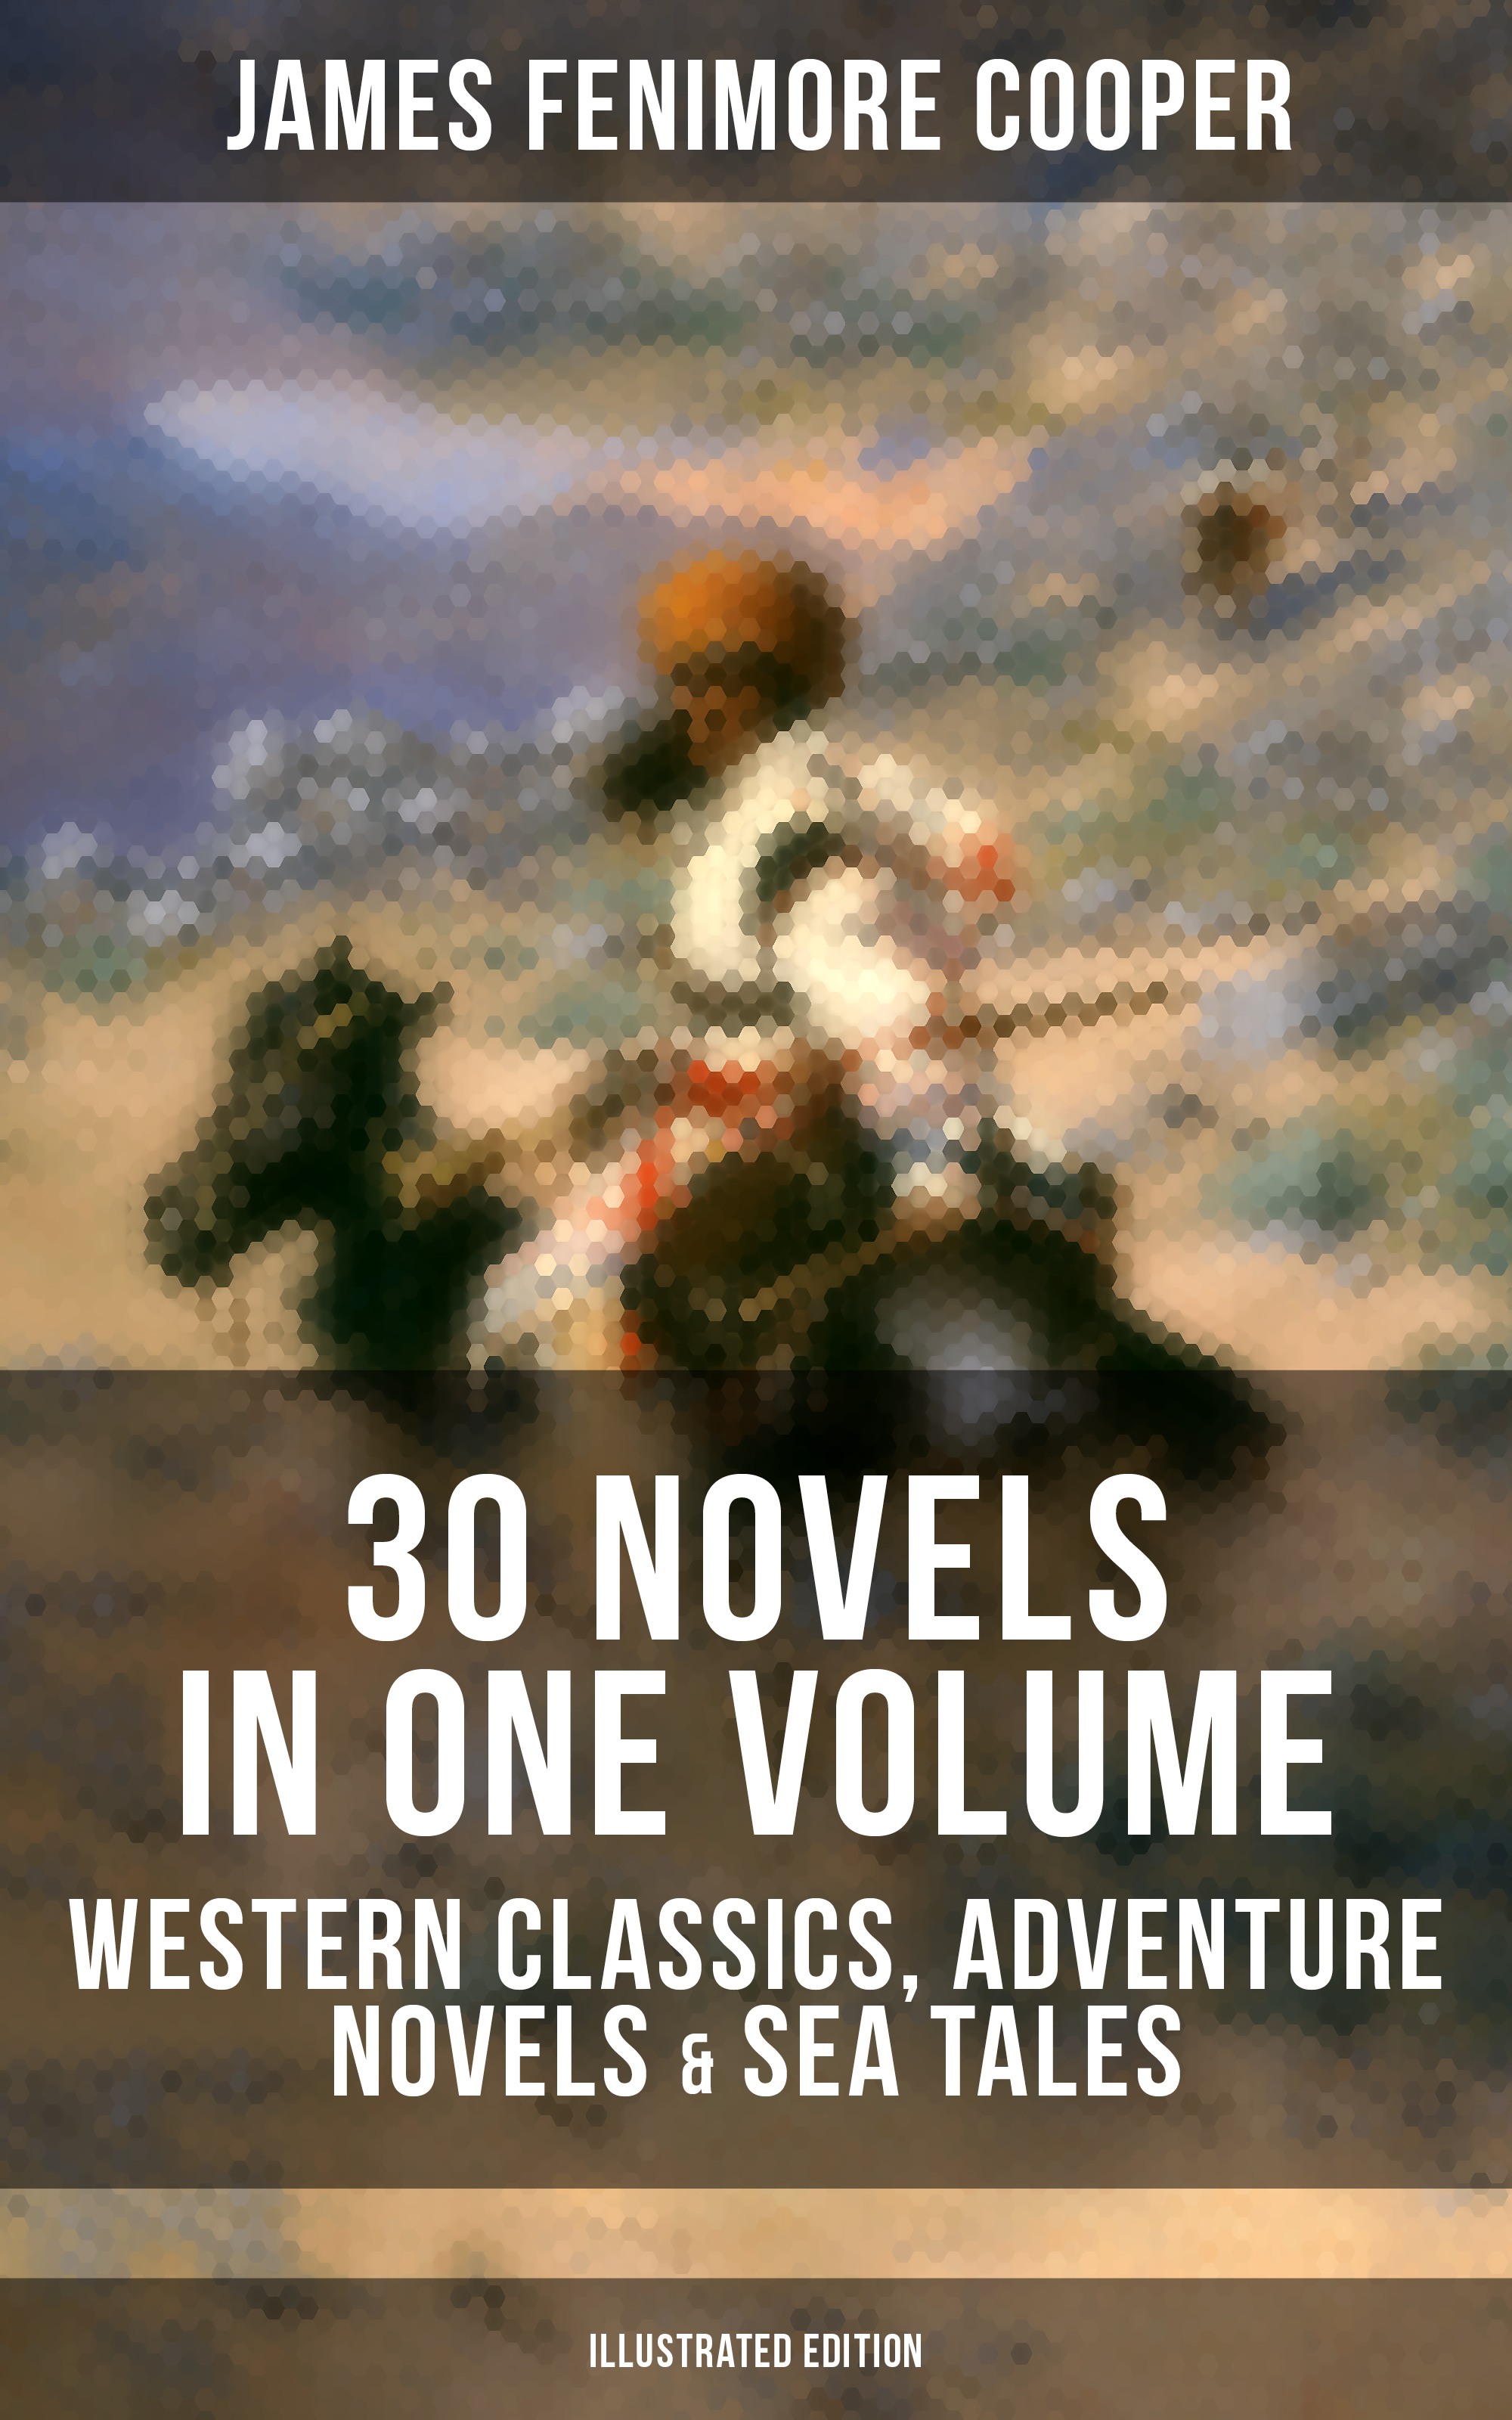 Джеймс Фенимор Купер JAMES FENIMORE COOPER: 30 Novels in One Volume - Western Classics, Adventure Novels & Sea Tales (Illustrated Edition) cooper james fenimore the spy